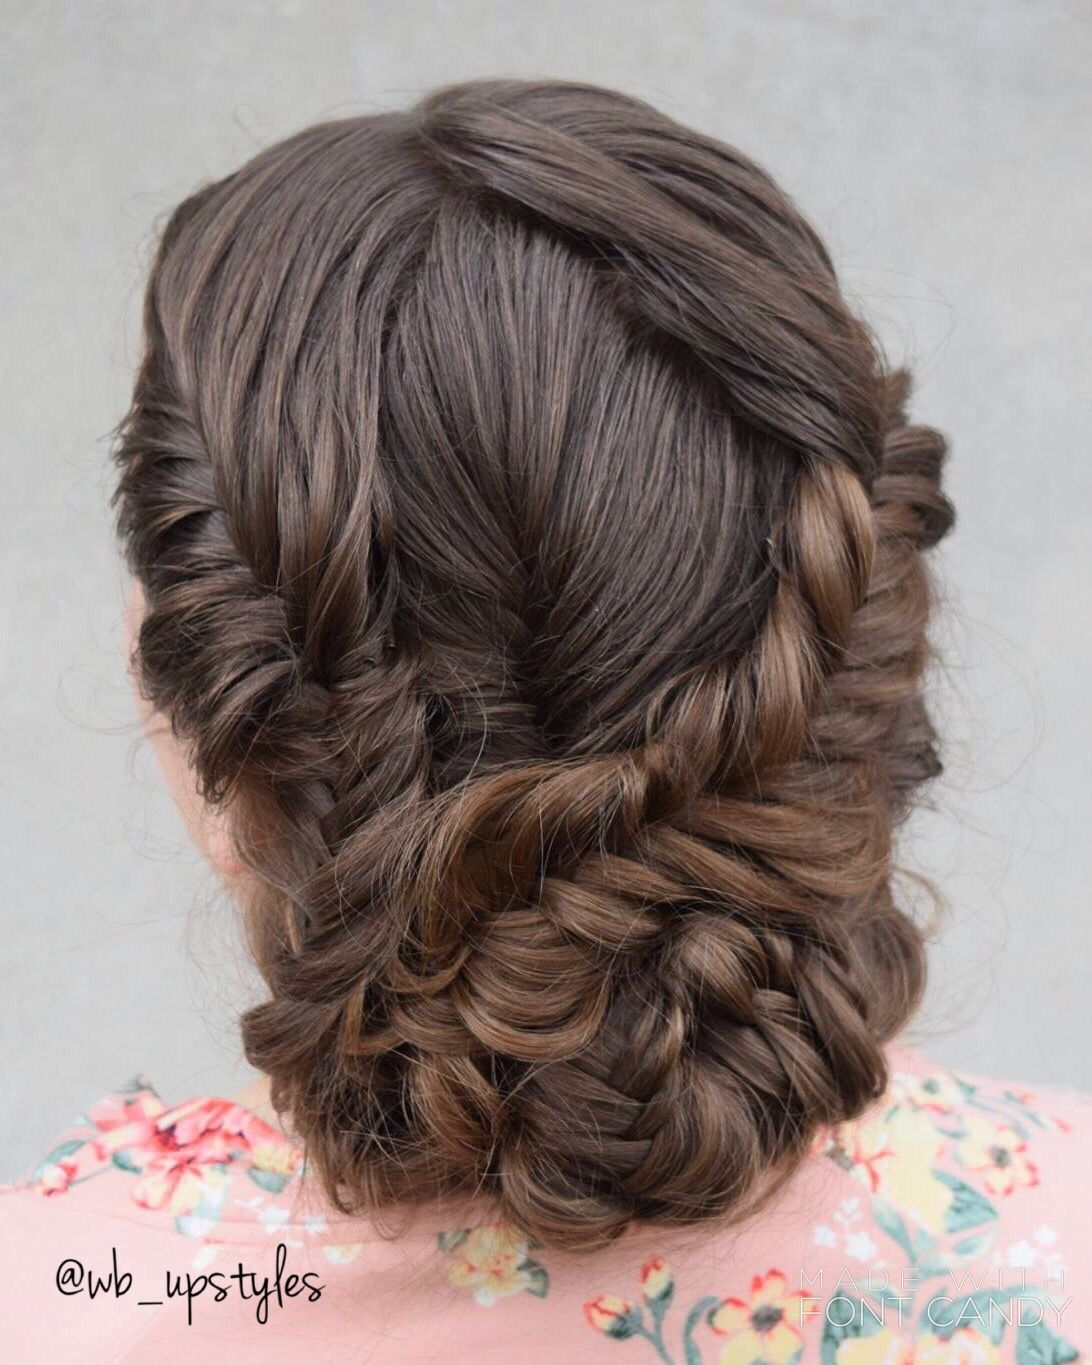 Whitney Carson Wedding Hair Style: Fishtail Braided Updo. Wedding Hair By Whitney At Luxe